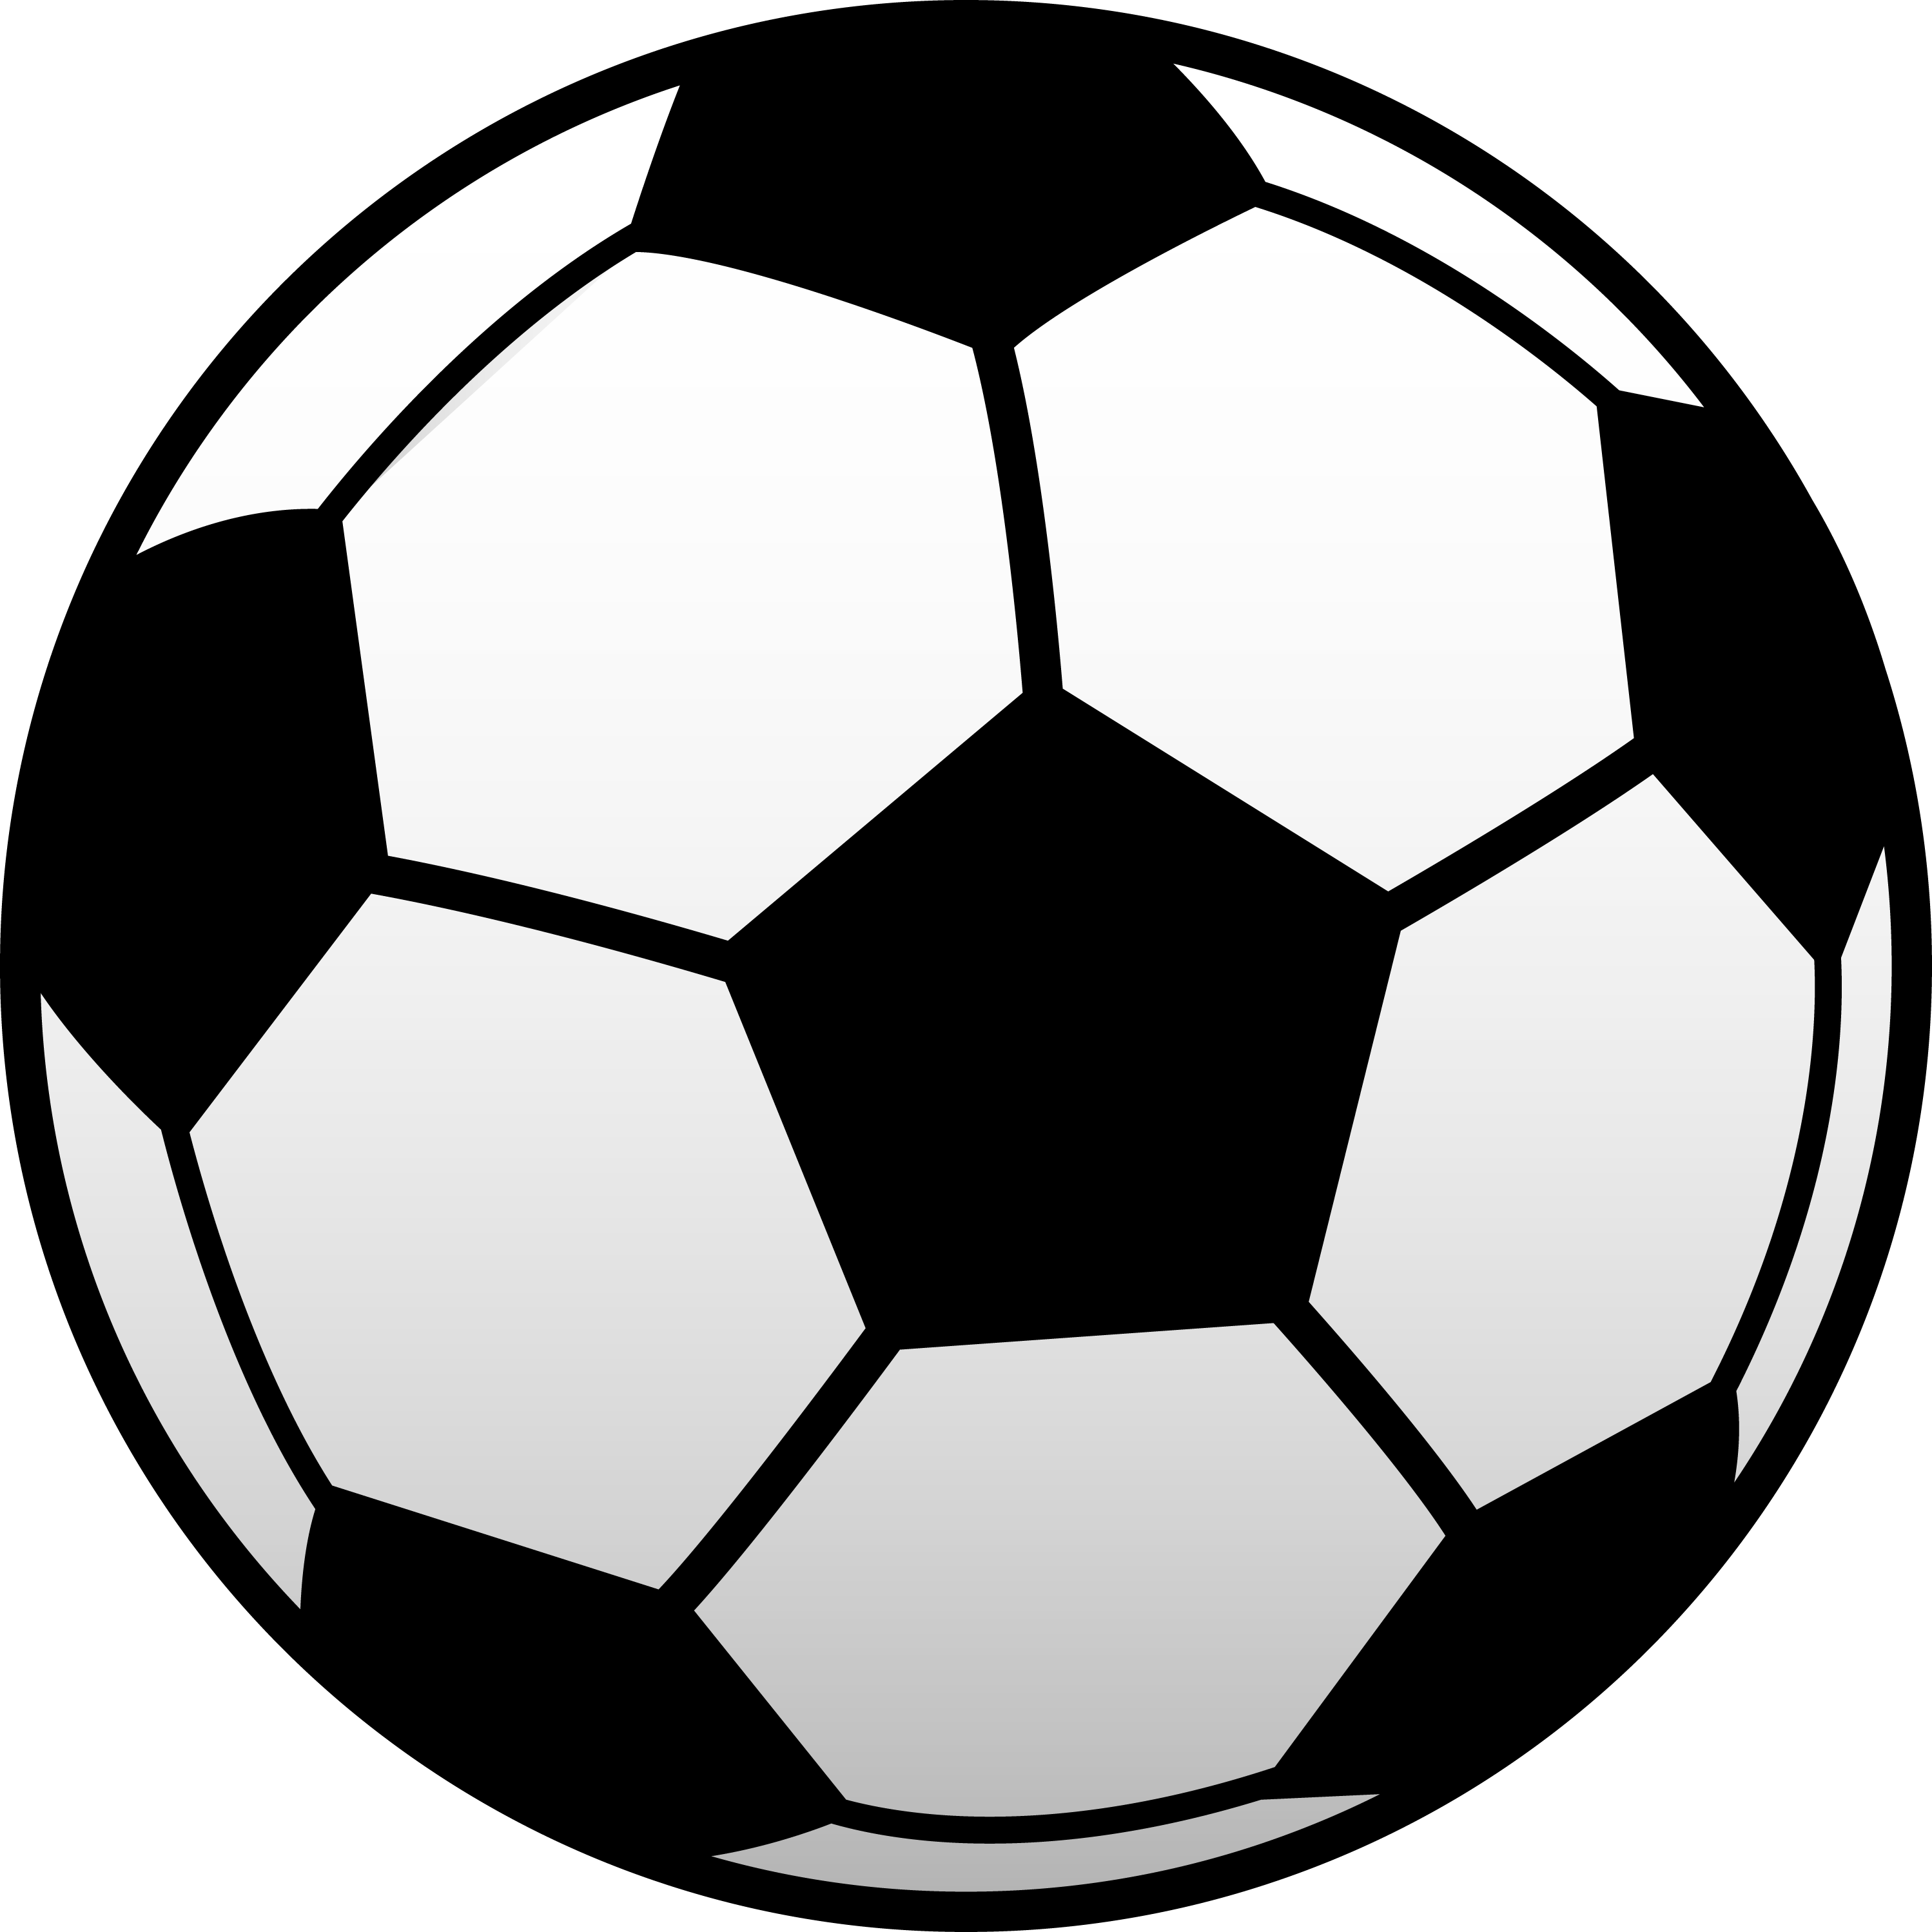 Ball clipart #3, Download drawings